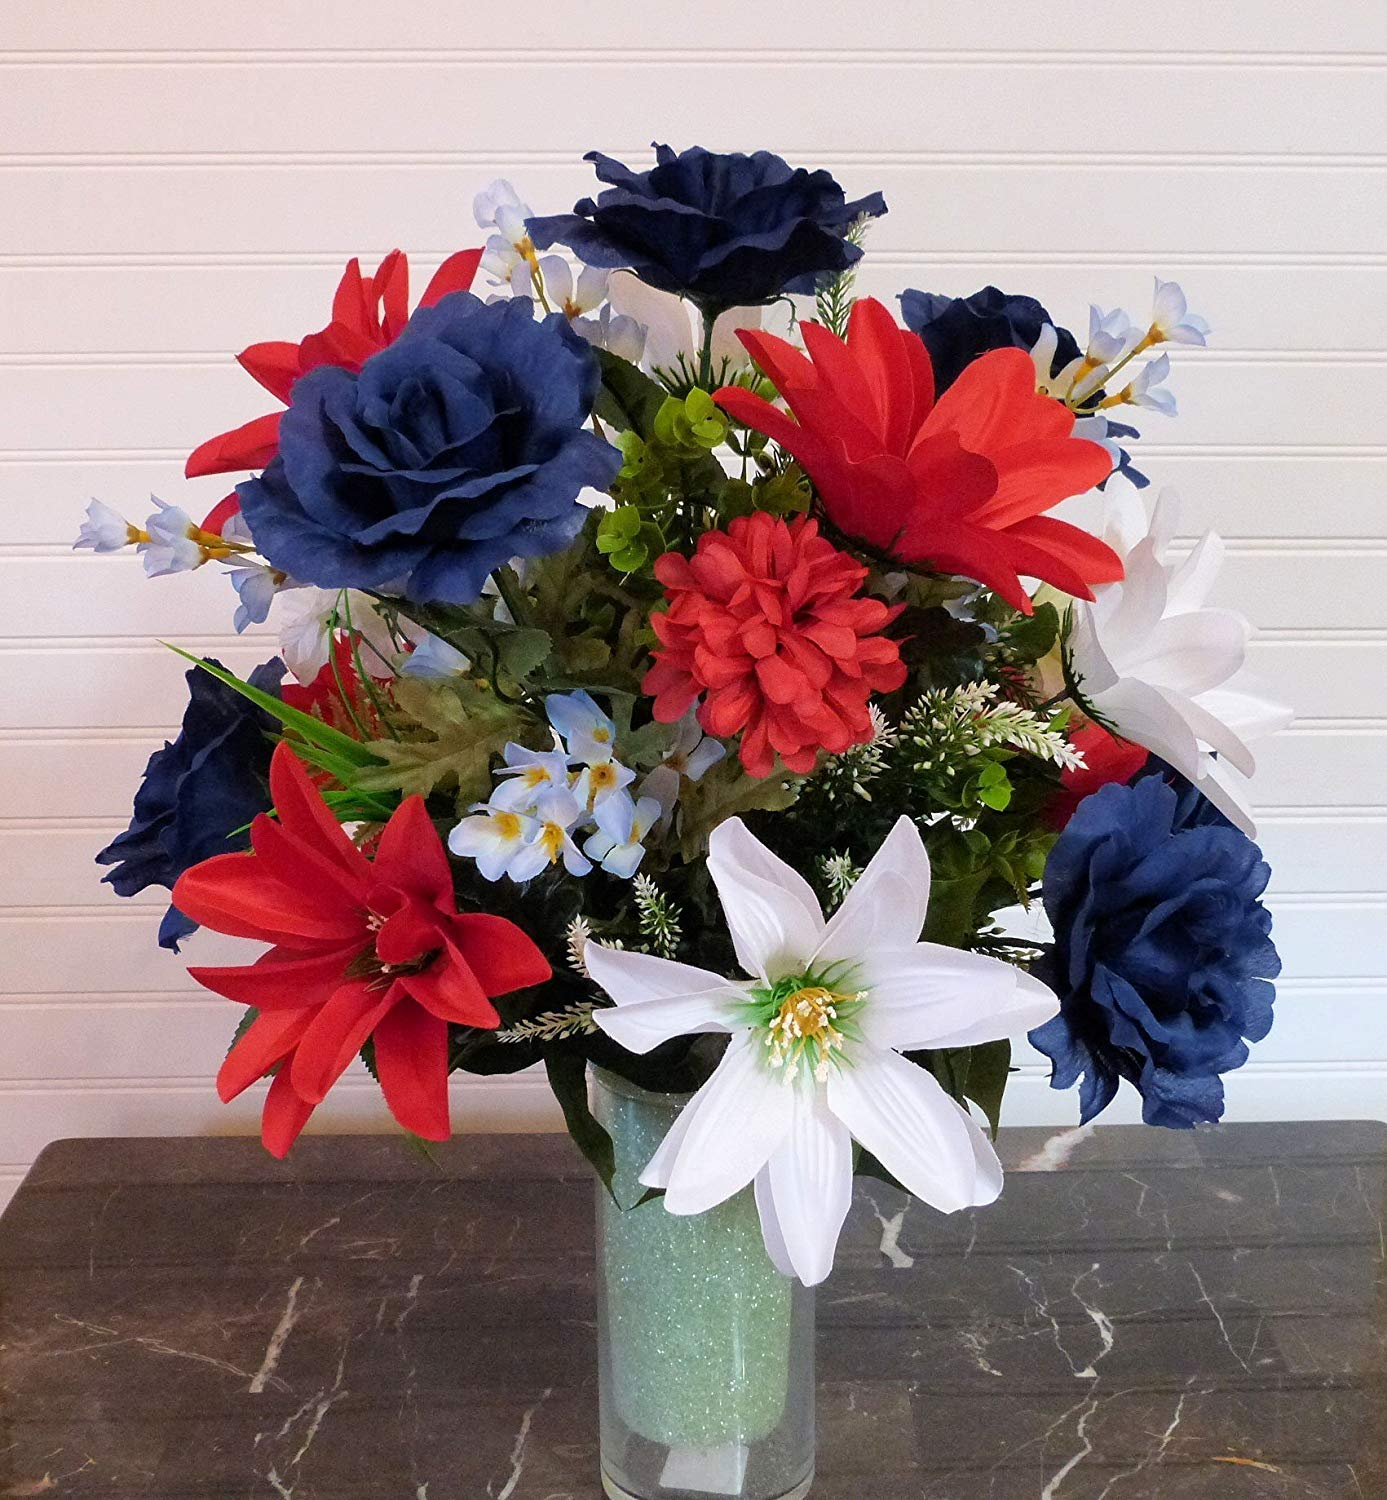 Buy Patriotic Floral Arrangement July 4th Table Centerpiece Red White Blue Silk Flowers Memorial Day Decor In Cheap Price On Alibaba Com